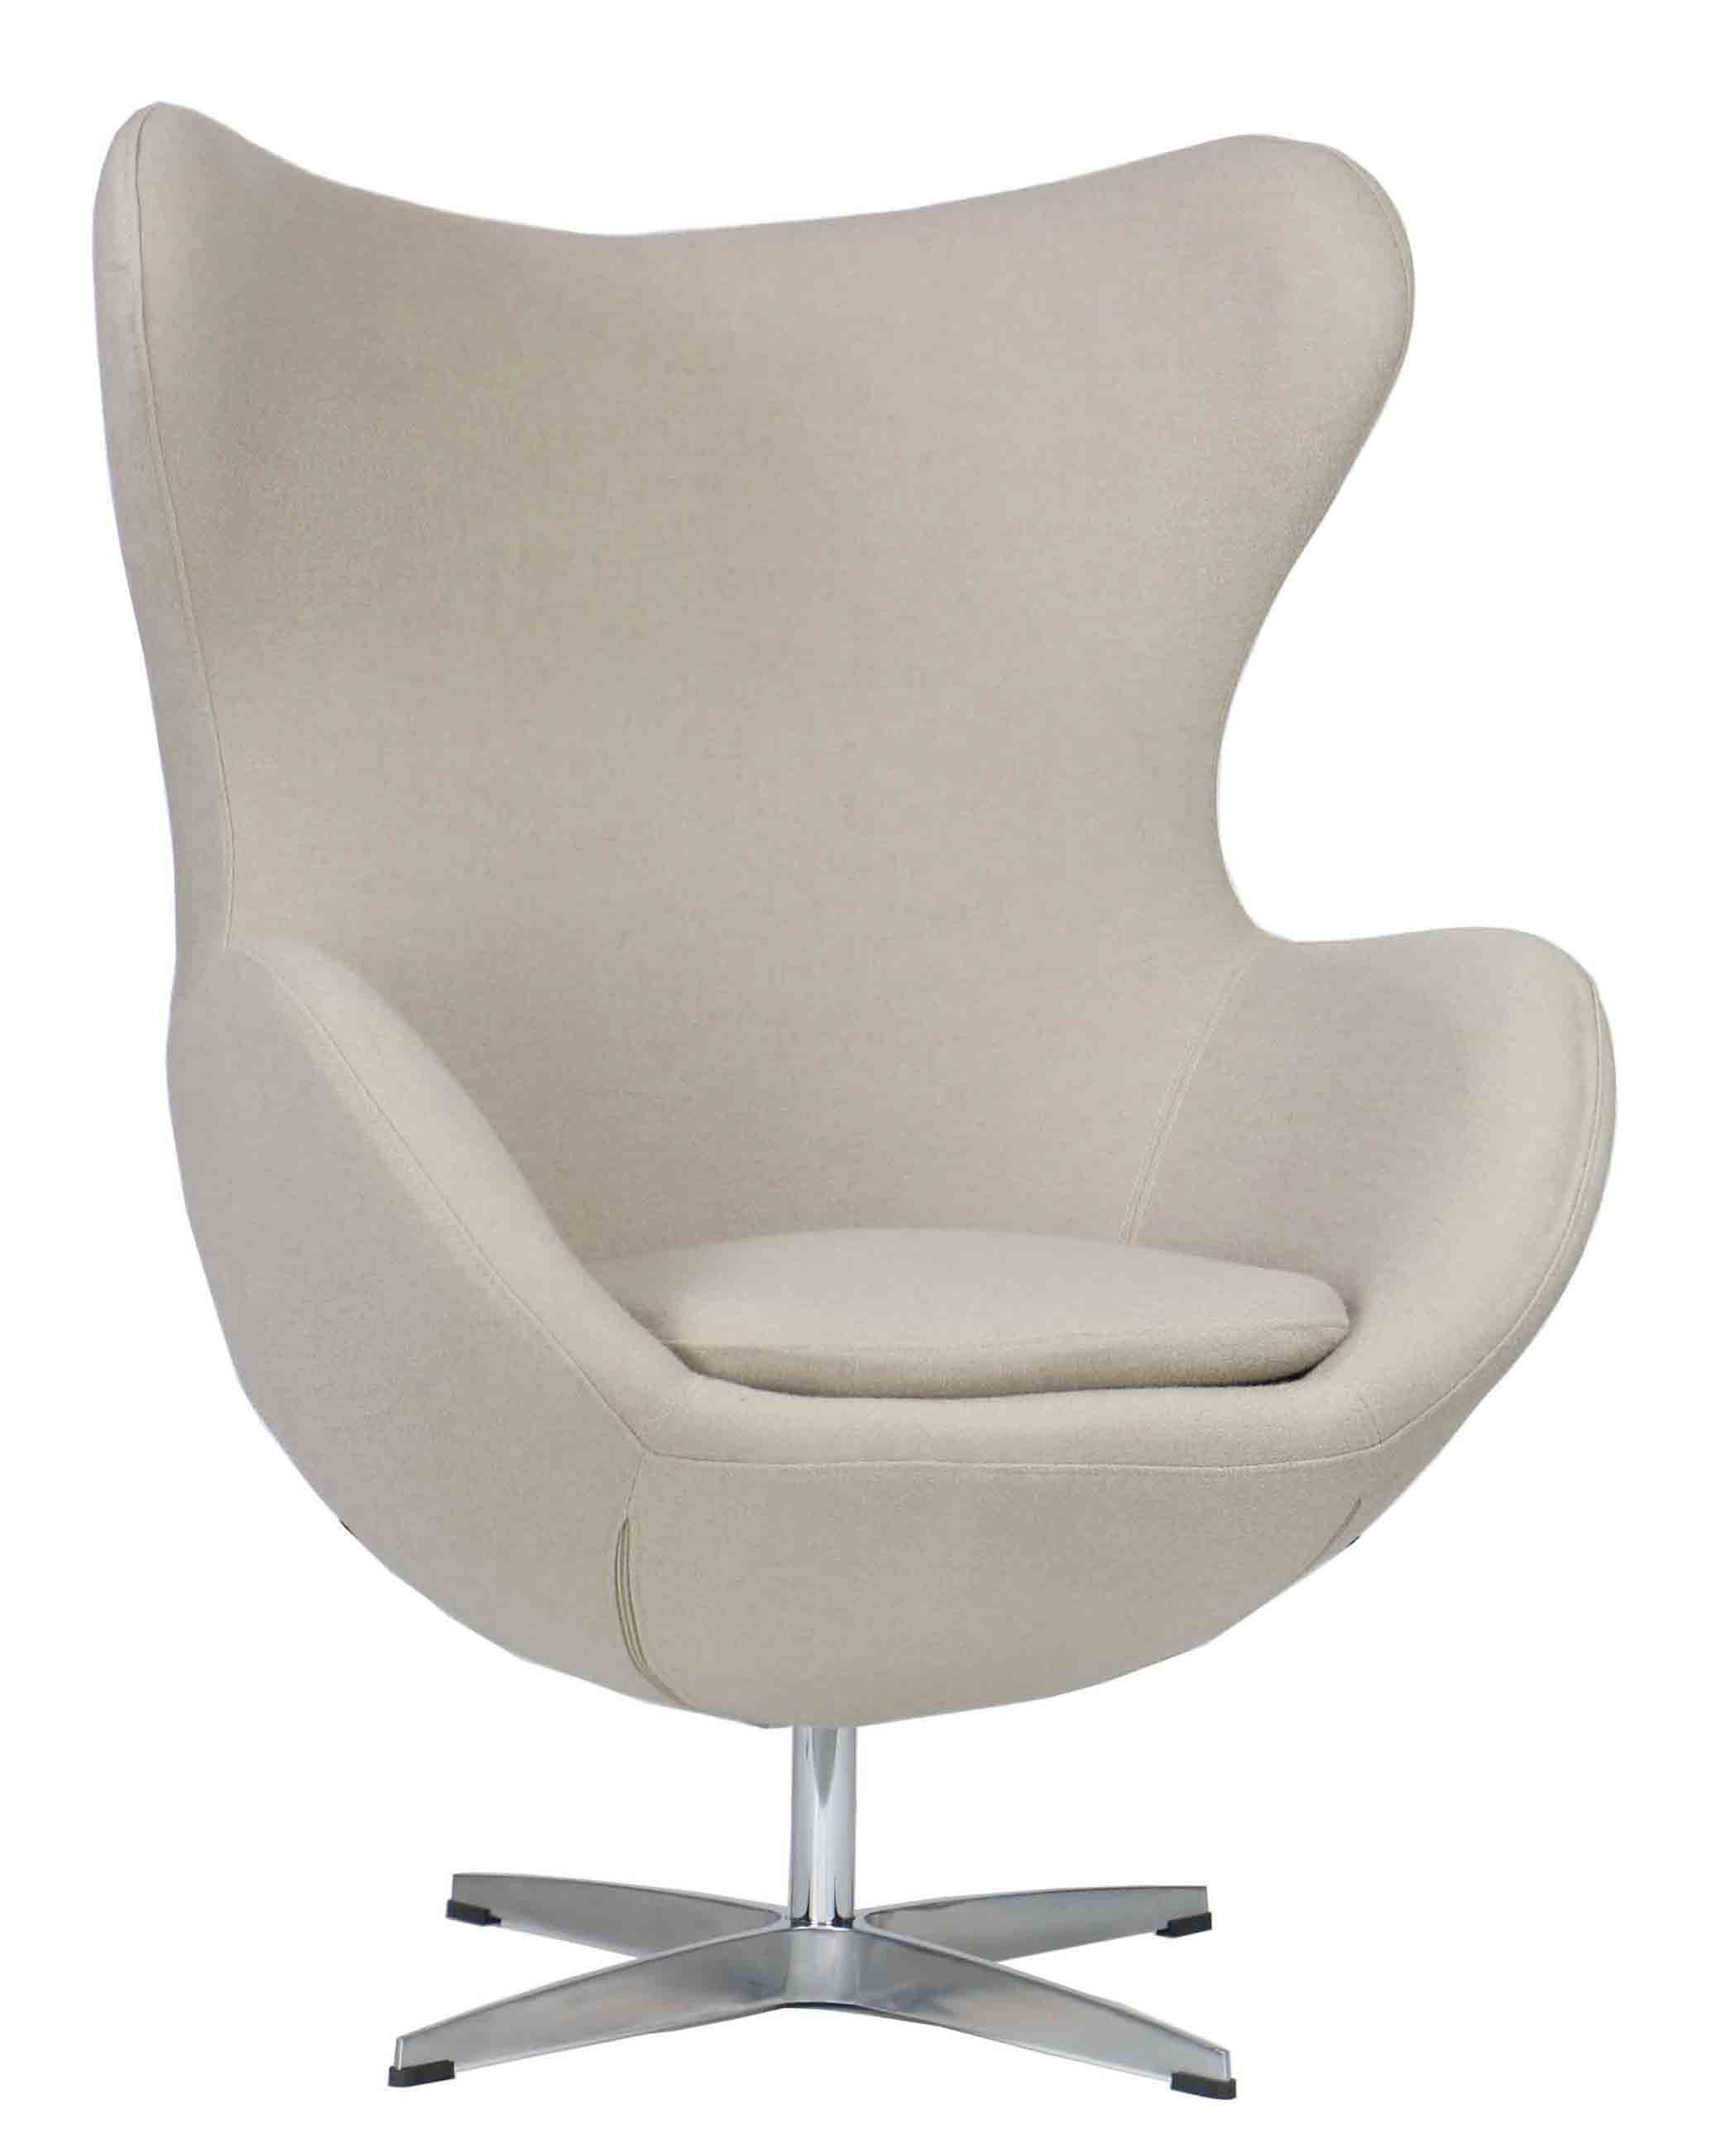 Designer replica egg chair in cream furniture home for Imitation designer chairs